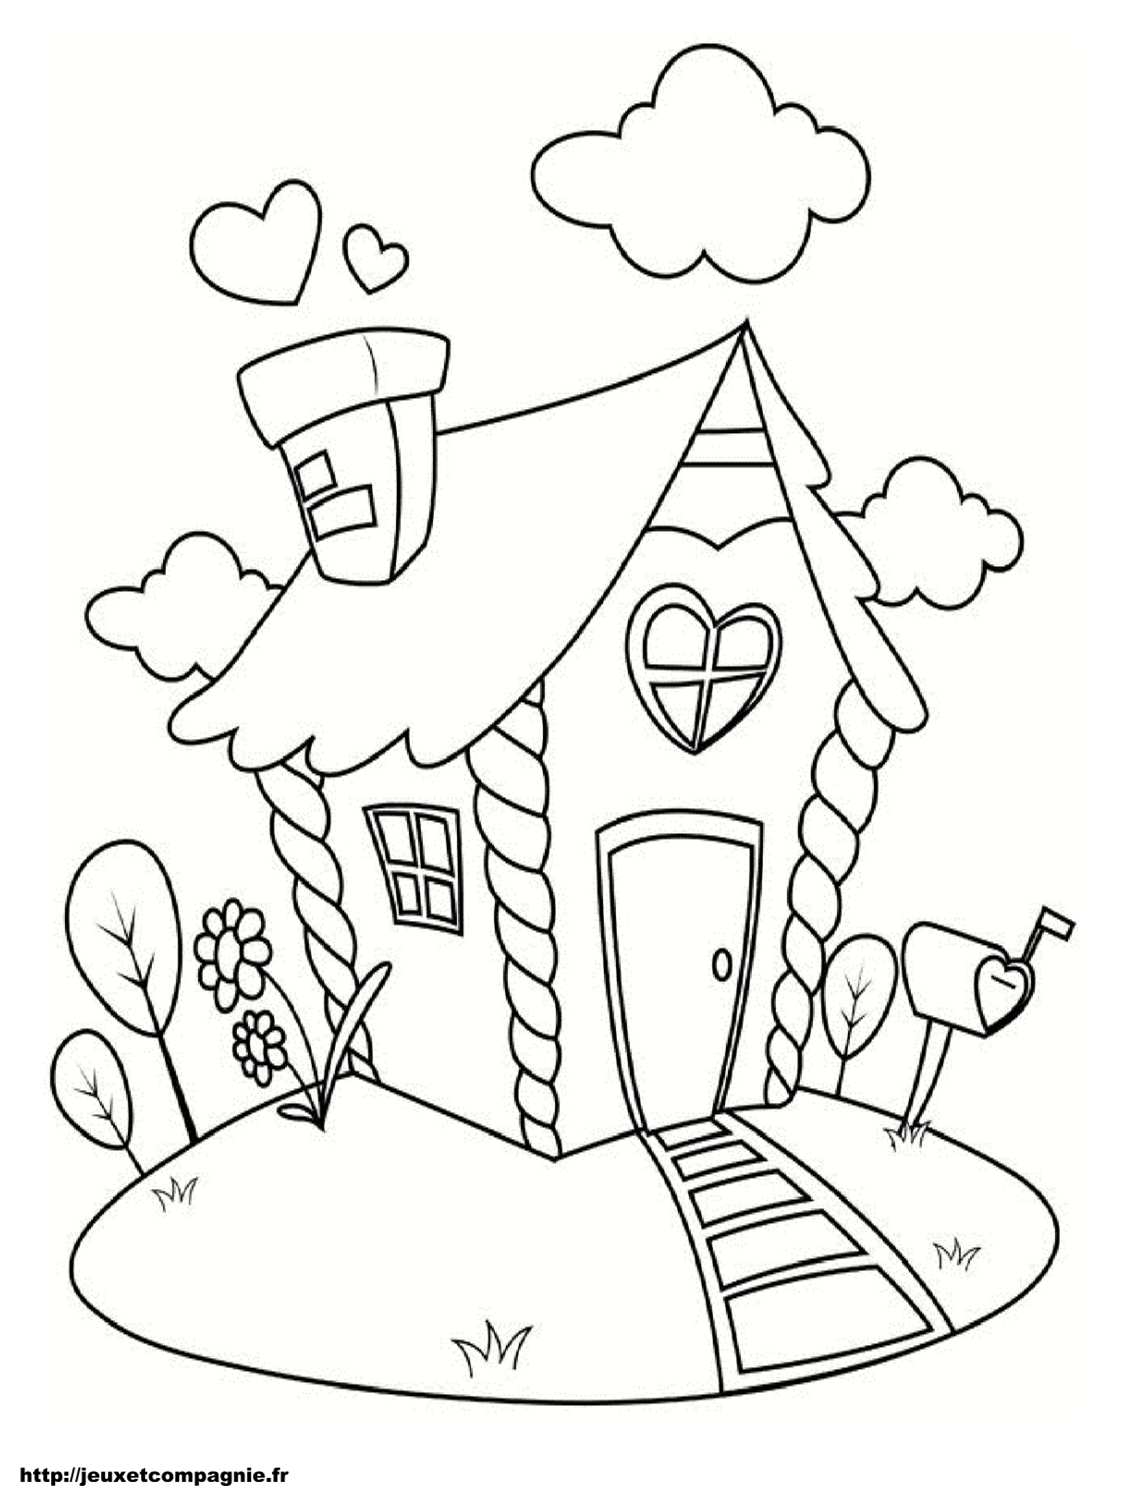 Coloriages de maisons - Coloriages a colorier ...